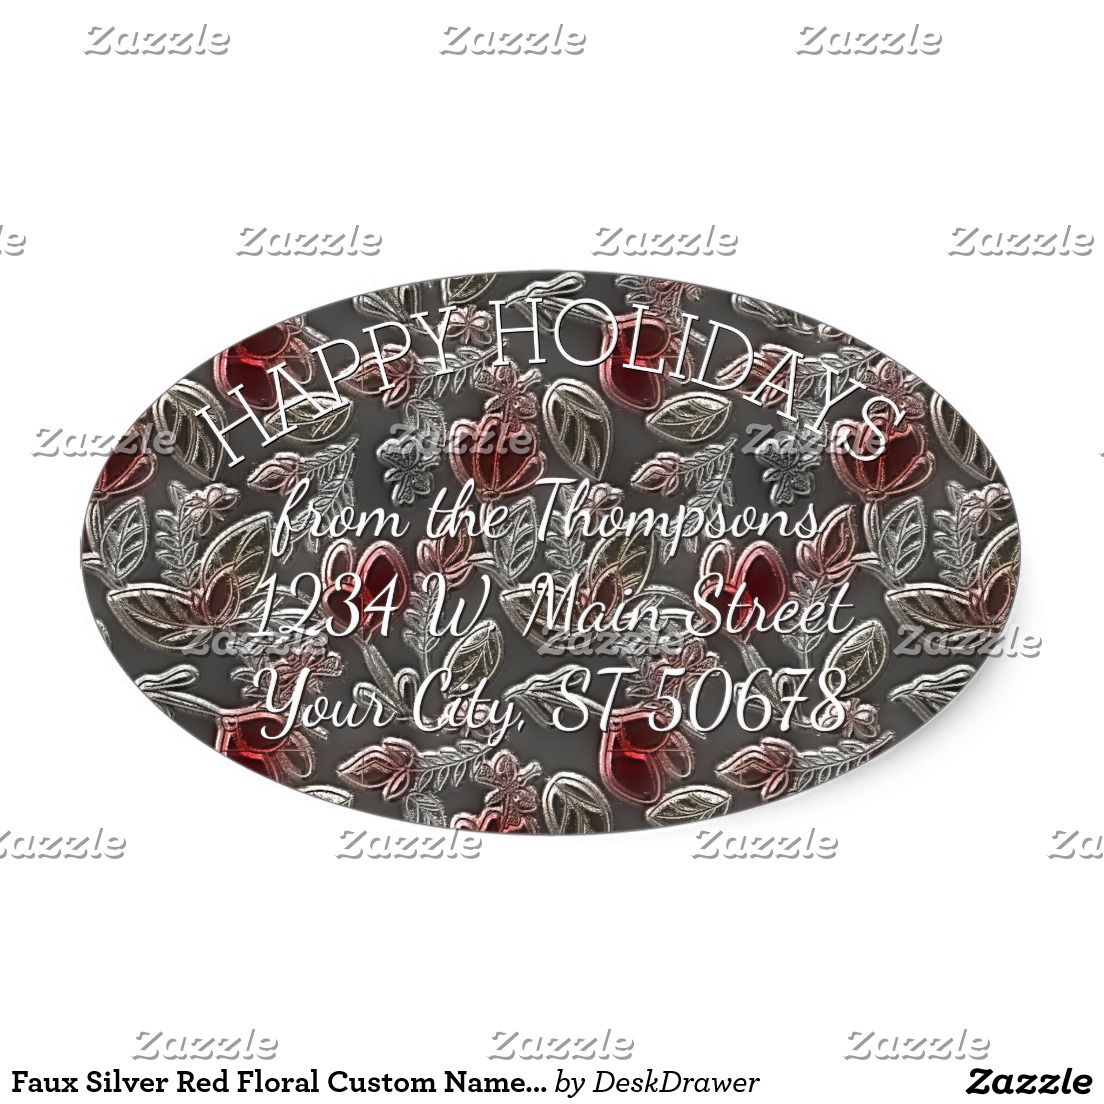 Faux Silver Red Floral Custom Name Address Label Oval Sticker. Unique, classic, trendy, pretty and decorative Holiday season address label. Beautiful, unique, classic, trendy, pretty and decorative image of elegant faux glass red and silver vintage ornate flower pattern. With room to customize or personalize with your name and address.